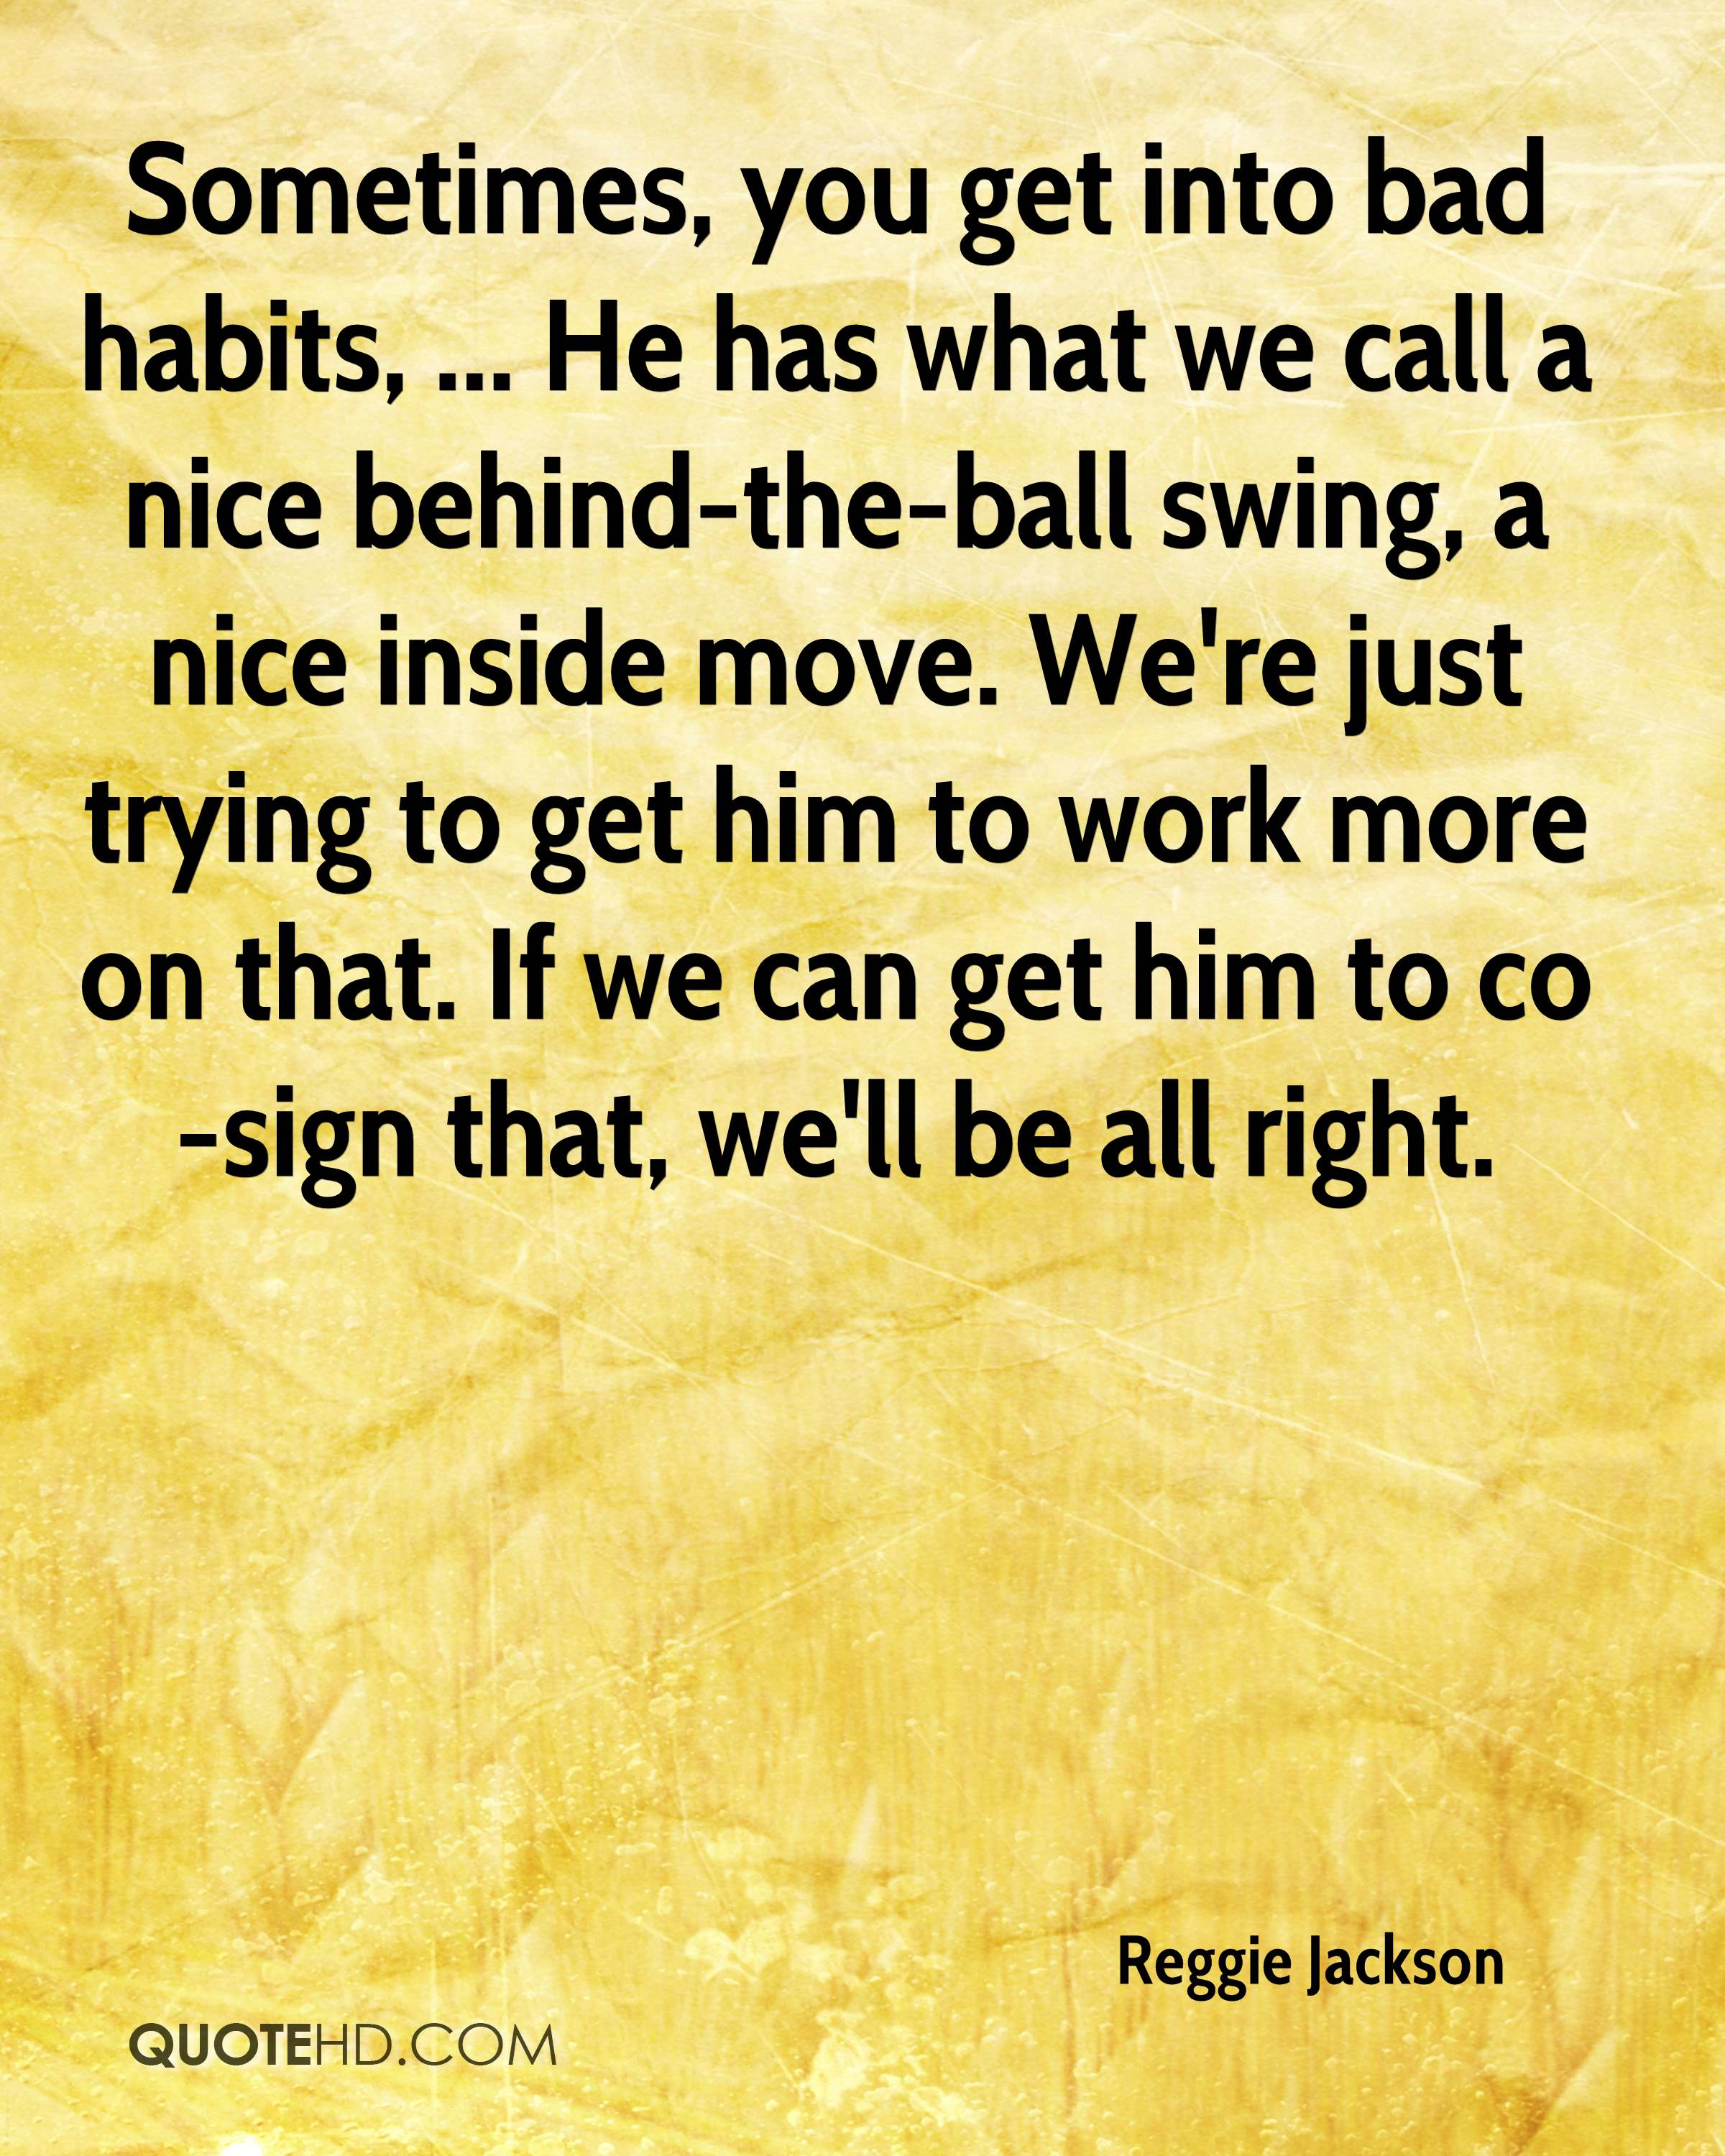 Sometimes, you get into bad habits, ... He has what we call a nice behind-the-ball swing, a nice inside move. We're just trying to get him to work more on that. If we can get him to co-sign that, we'll be all right.